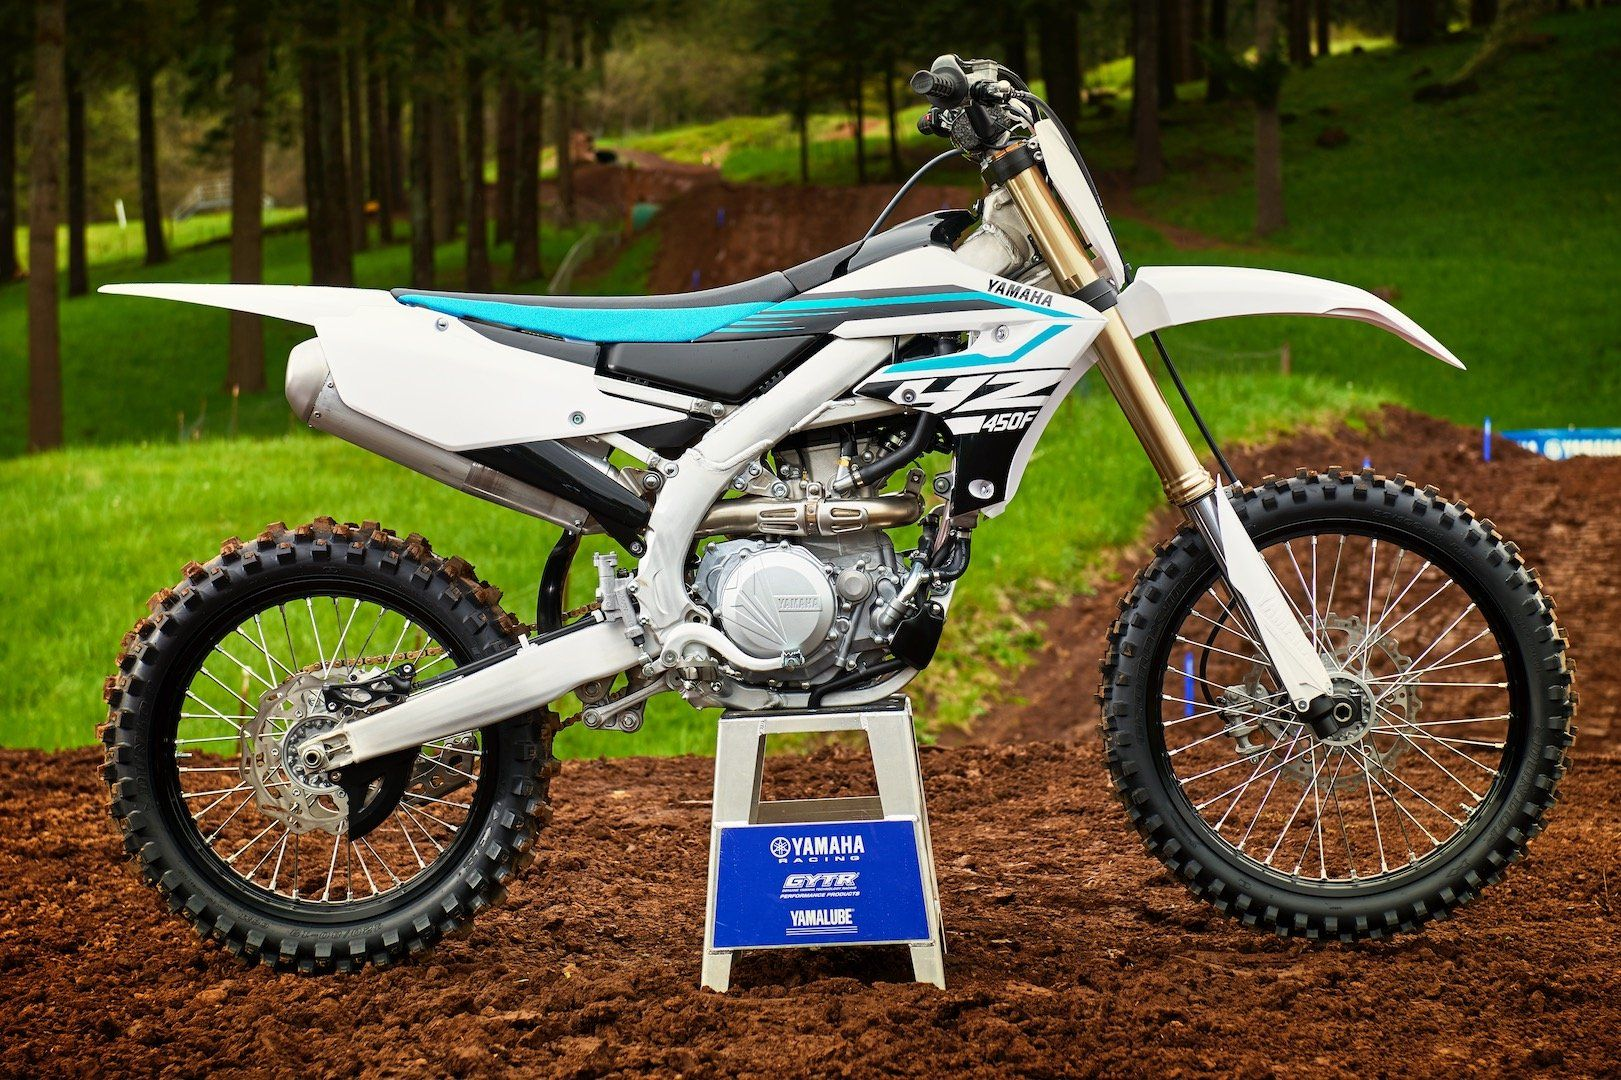 2018 Yamaha 450 Redesign And Review From 2018 Yamaha Yz450f First Look 14 Fast Facts Throughout 2018 Yamaha 450 Yamaha Dirtbikes First Look